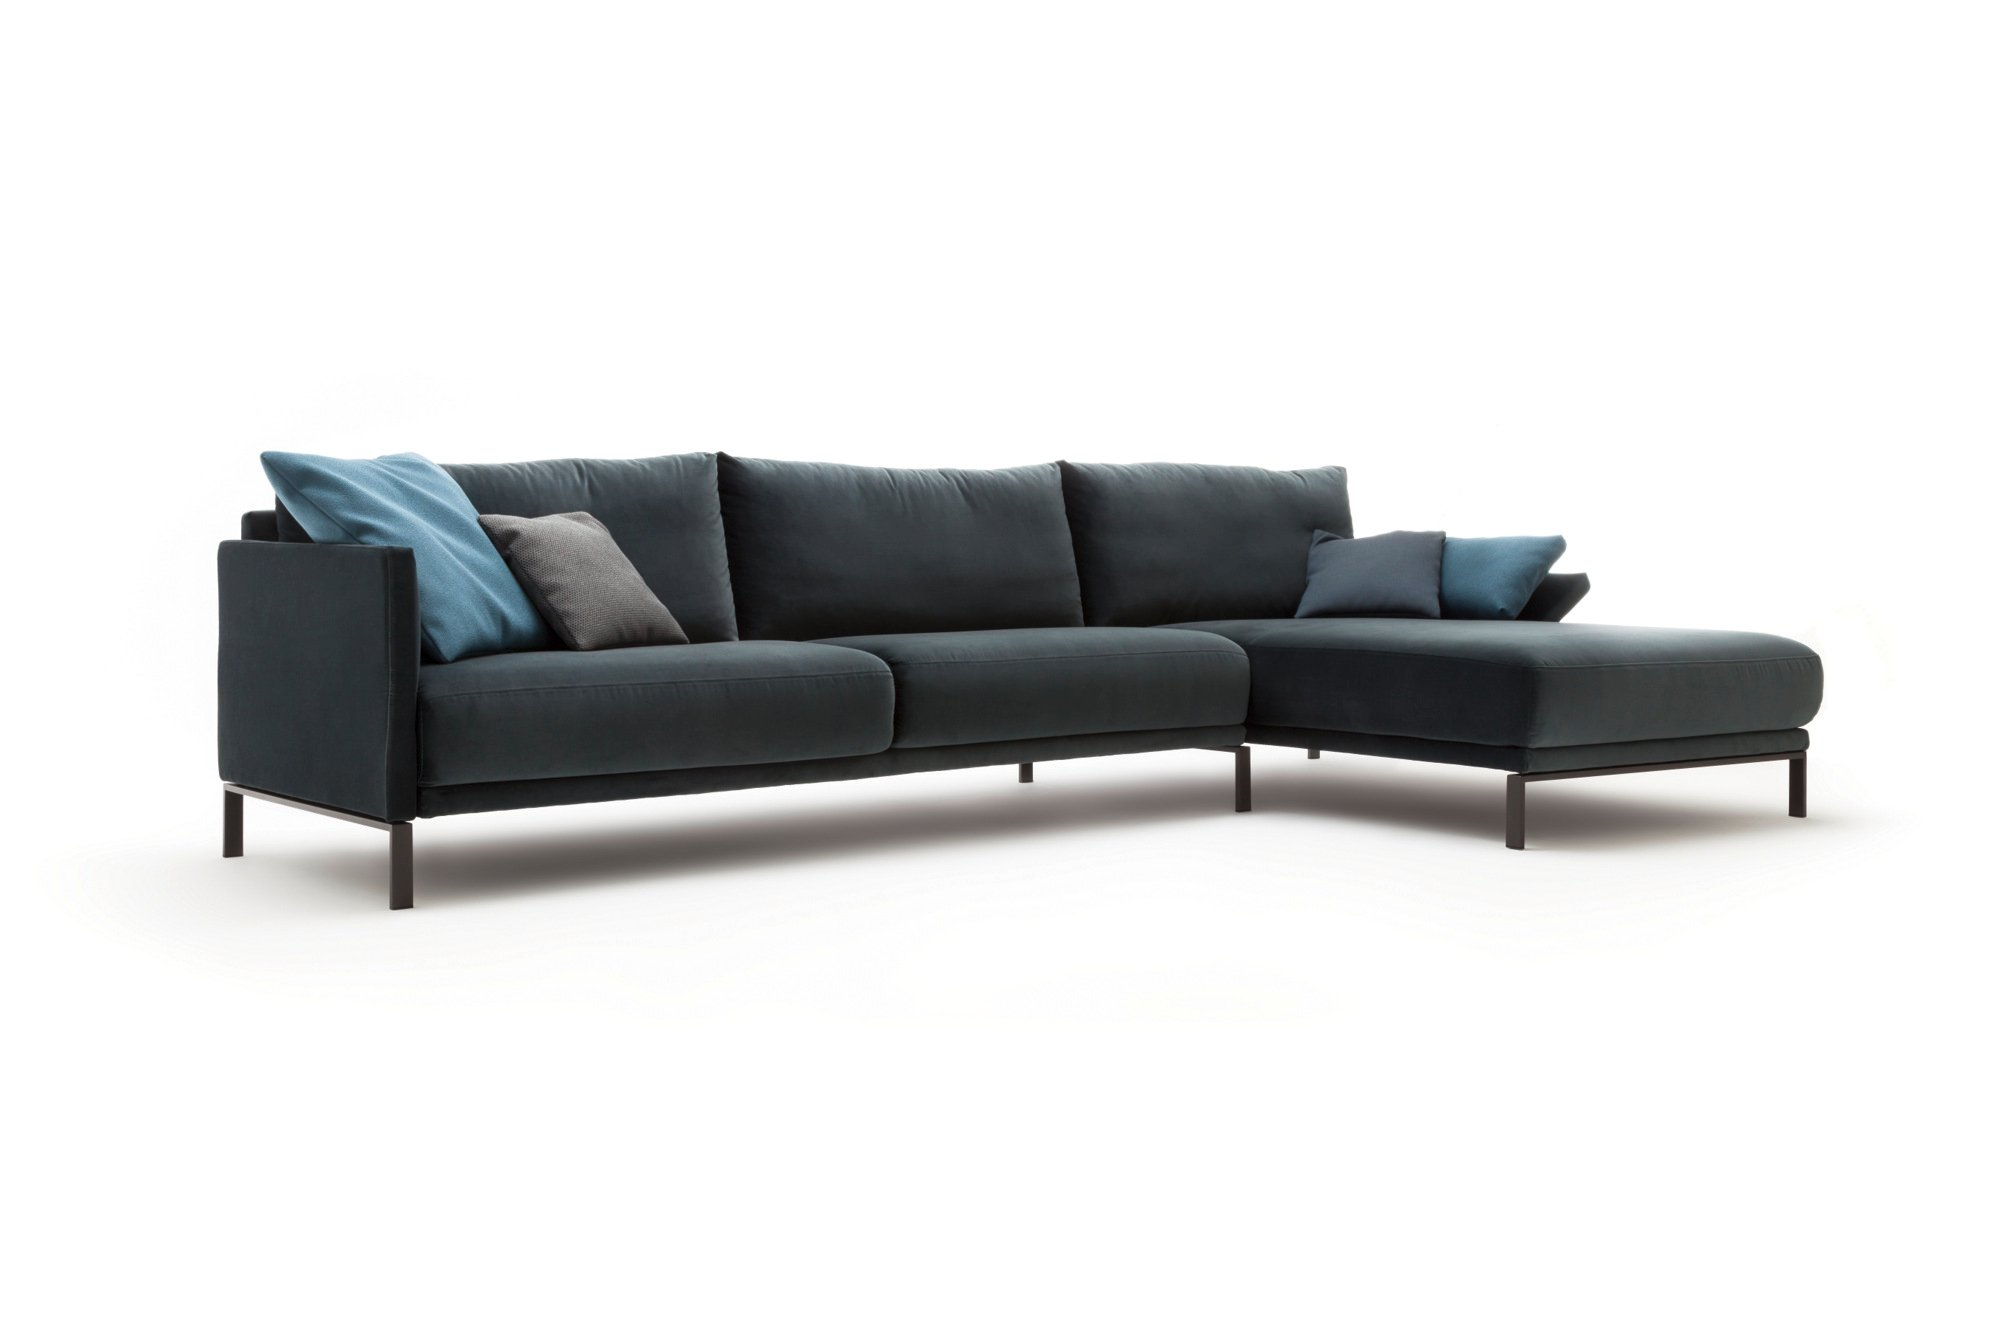 cara ecksofa kollektion cara by rolf benz design anita. Black Bedroom Furniture Sets. Home Design Ideas